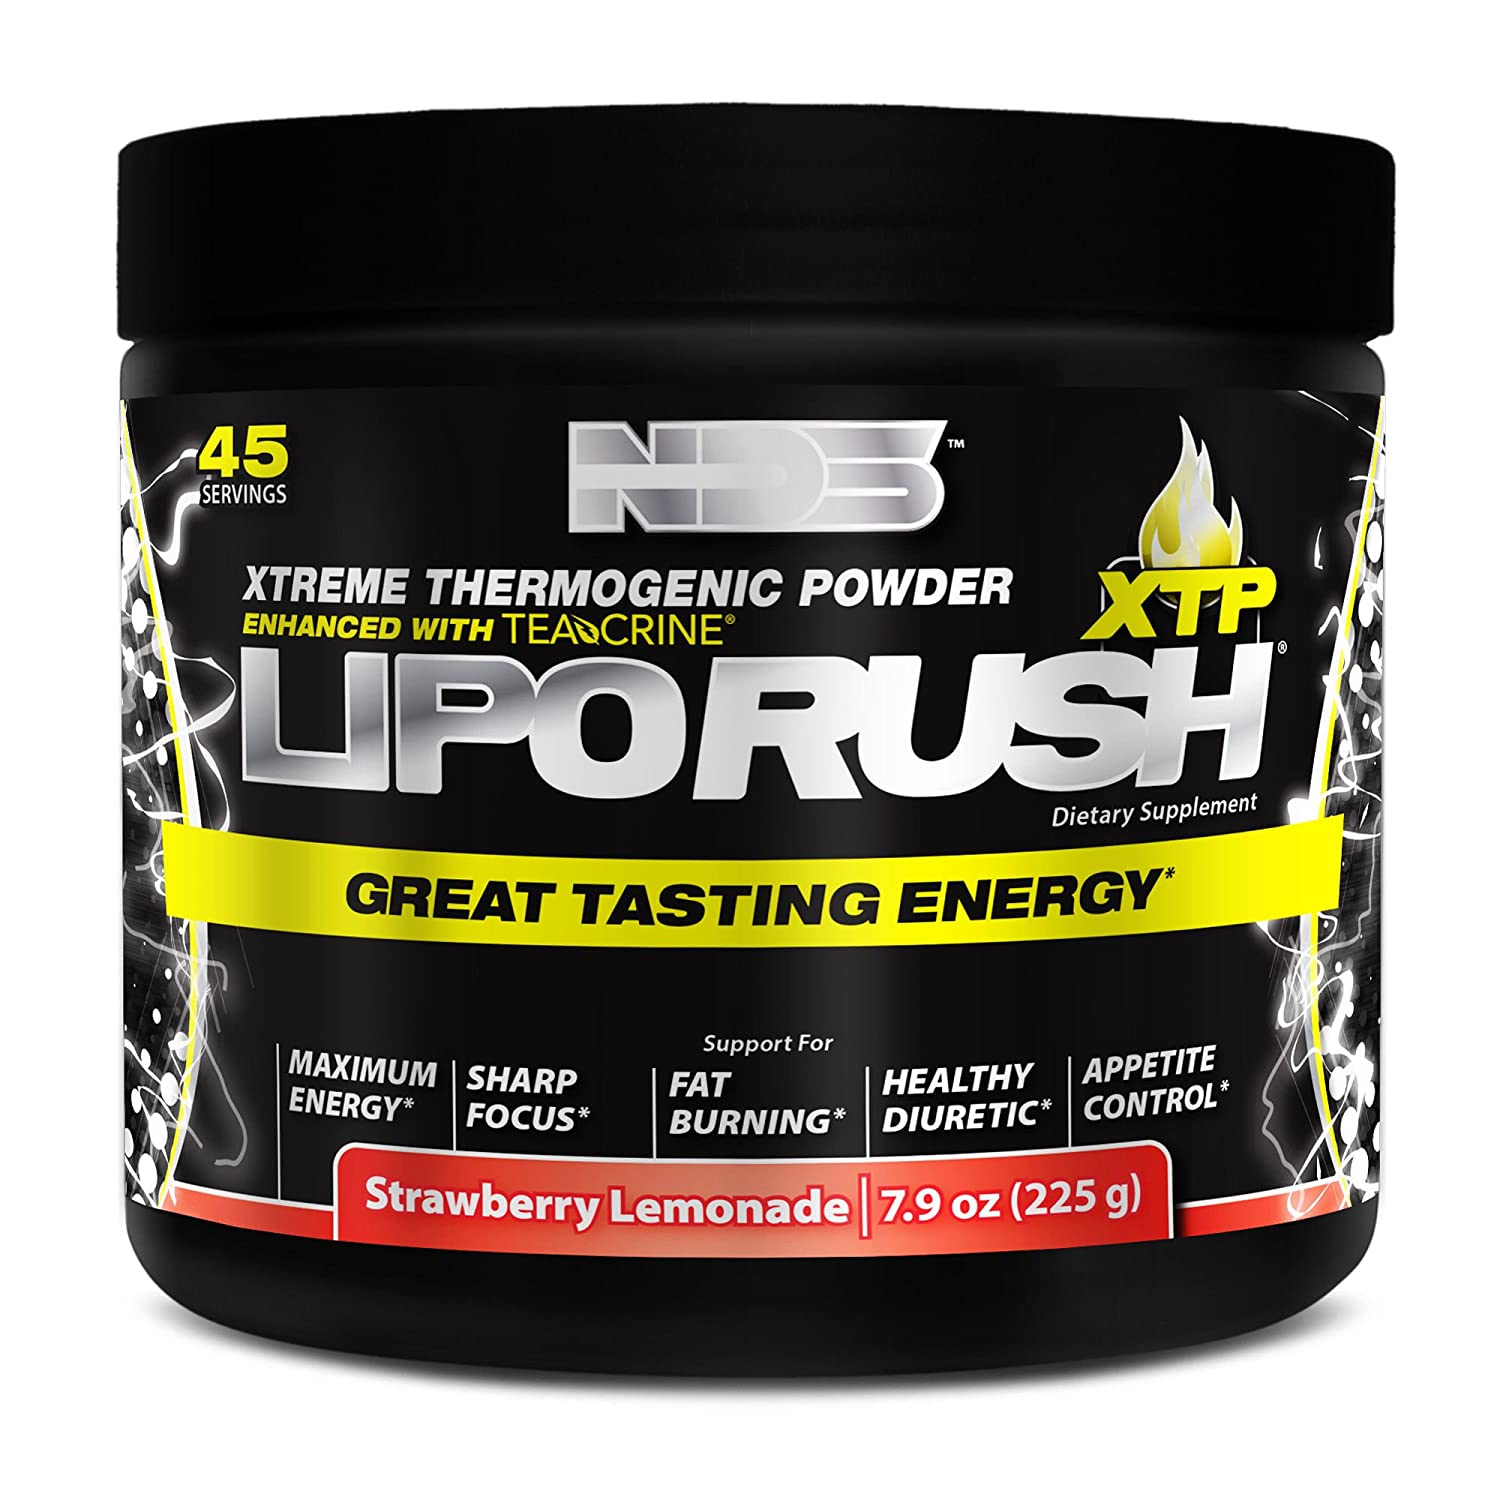 NDS Nutrition LipoRush XTP – Extreme Thermogenic Fat Burning Powder Enchanced with L-Carnitine and Teacrine – Maximum Energy, Sharp Focus, Appetite Control – Strawberry Lemonade – 45 Servings